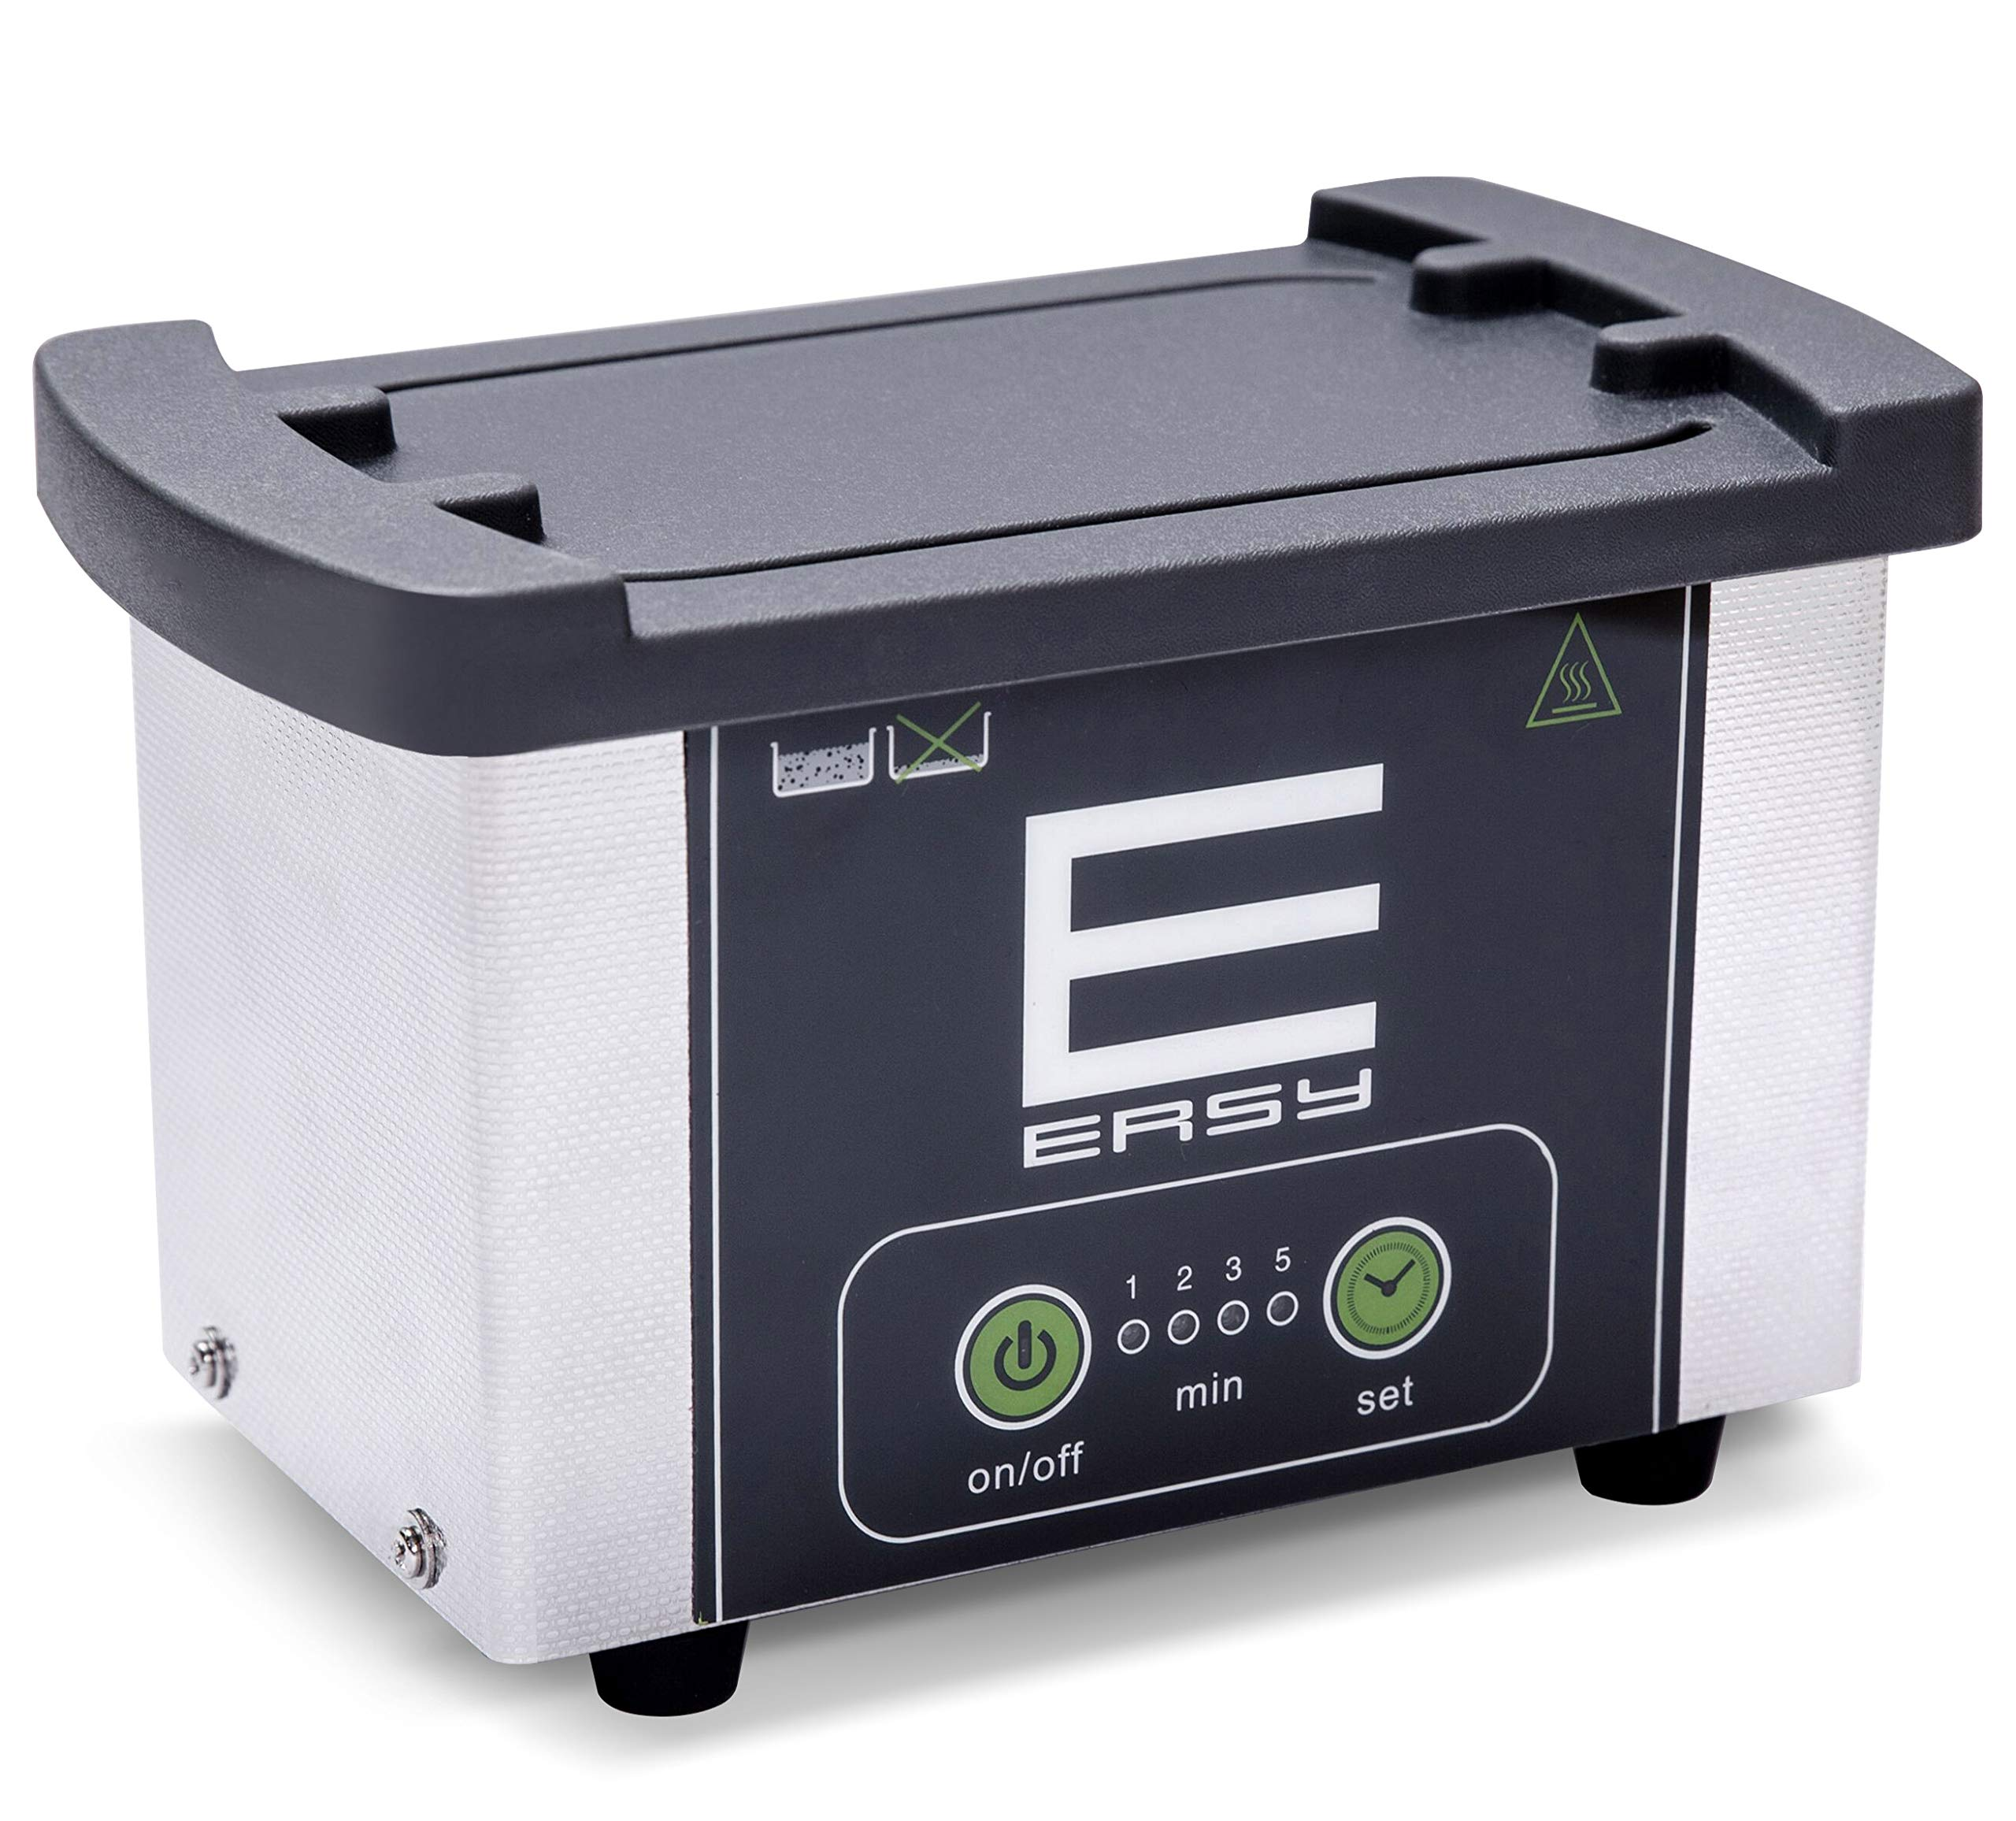 Ultrasonic Jewelry Cleaner, Compact Professional Ultrasonic Jewelry Cleaner 23 Ounces(700ML) with Four Timer, for Eyeglasses Coins Tools Razors Jewelry Earrings Necklaces Dentures by EERSY